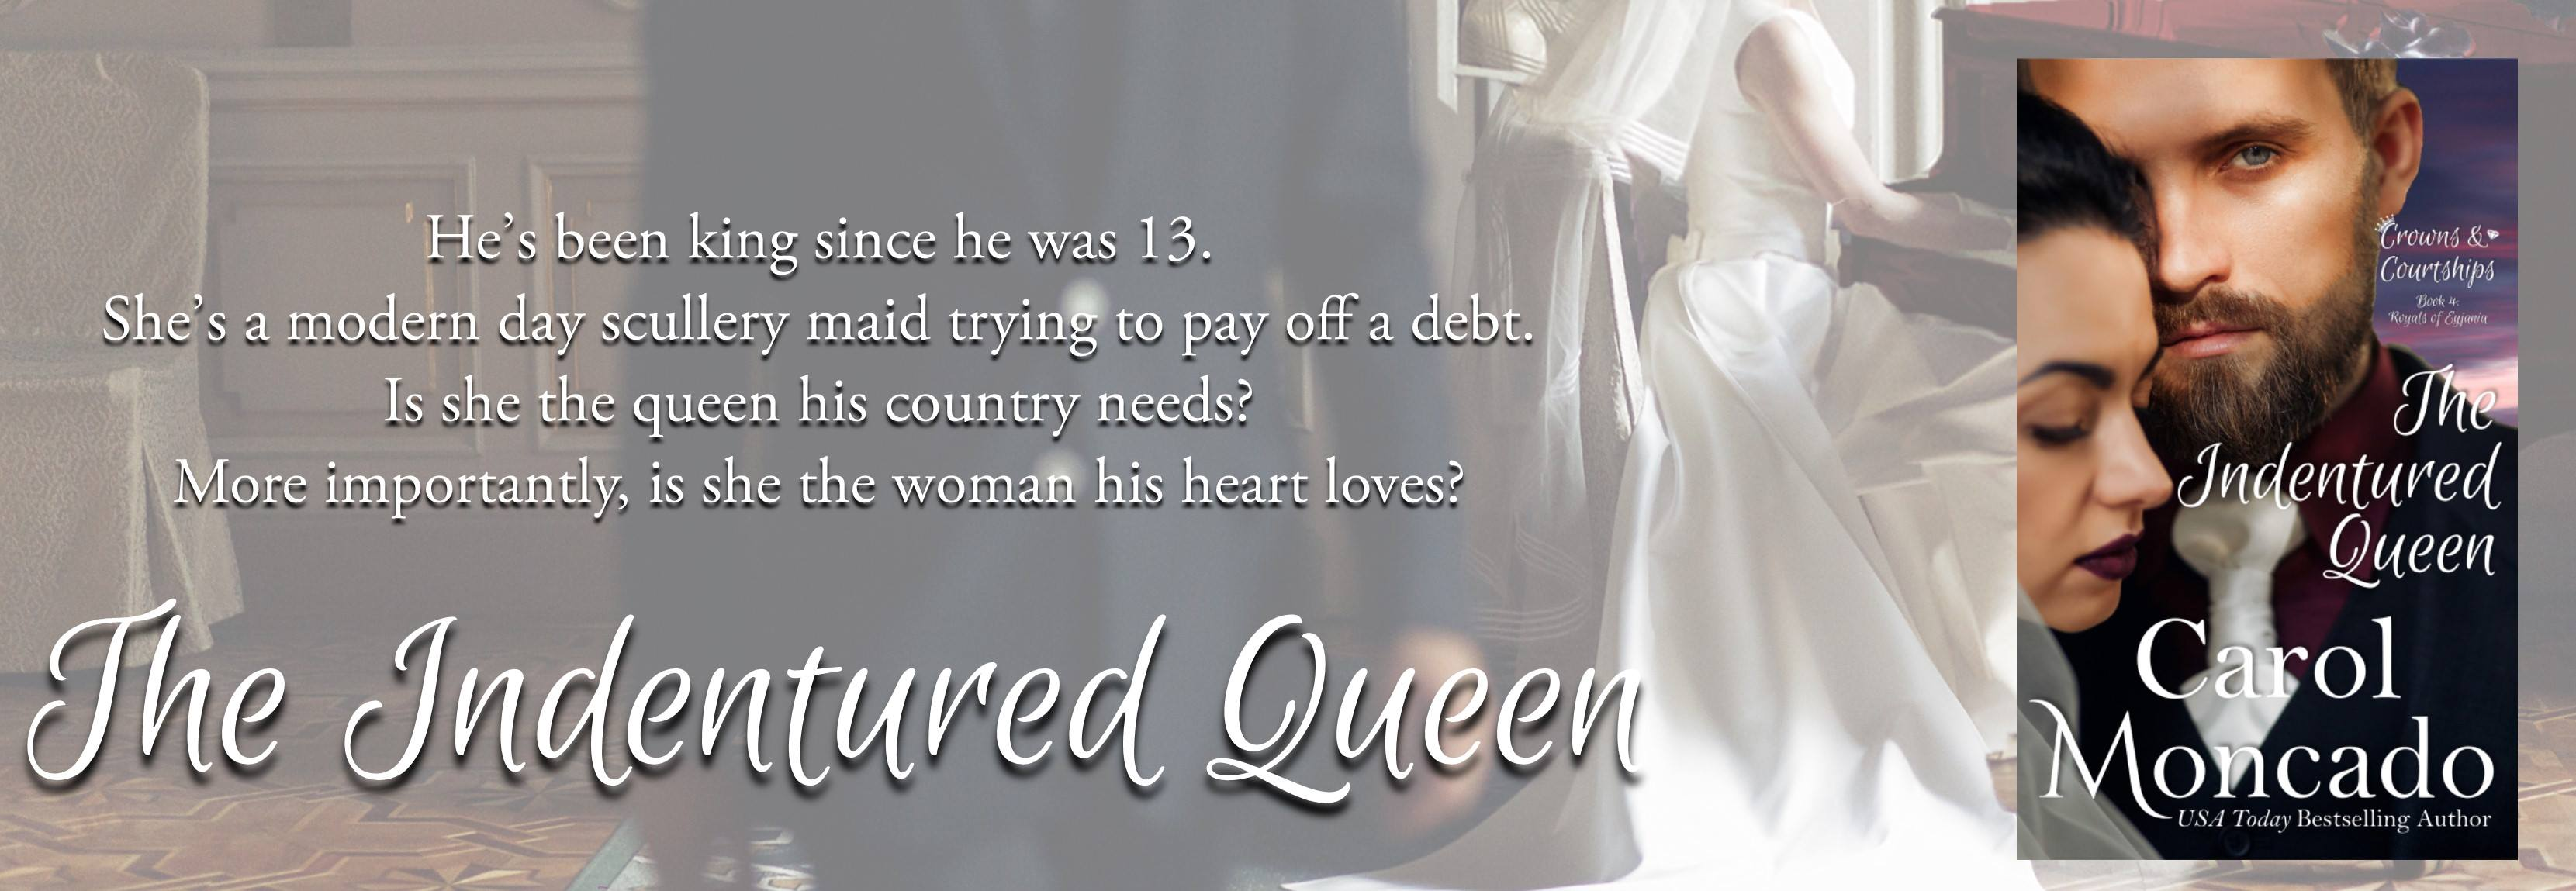 The Indentured Queen